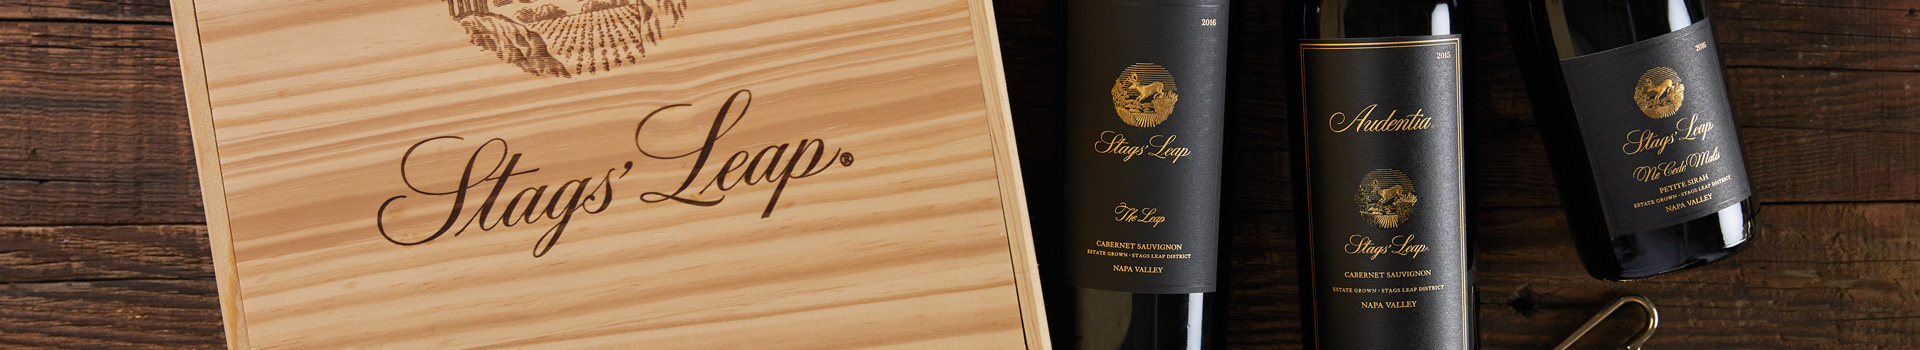 Stags' Leap Wooden Wine Box